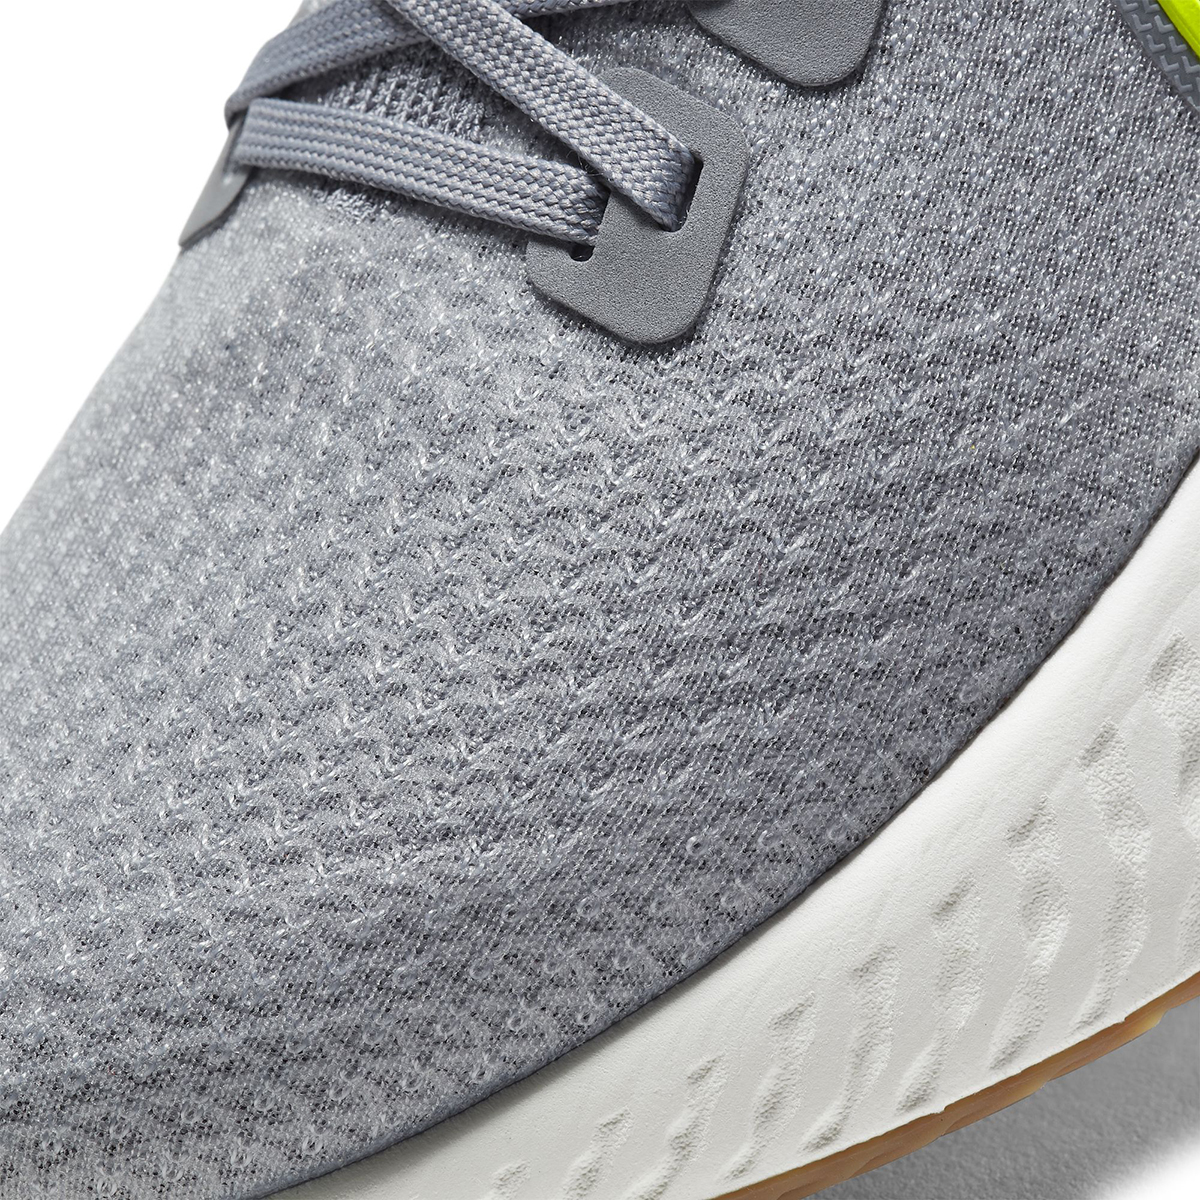 Men's Nike React Infinity Run Flyknit Running Shoe - Color: Particle Grey/Wolf Grey/Sail/Volt (Regular Width) - Size: 6, Particle Grey/Wolf Grey/Sail/Volt, large, image 7